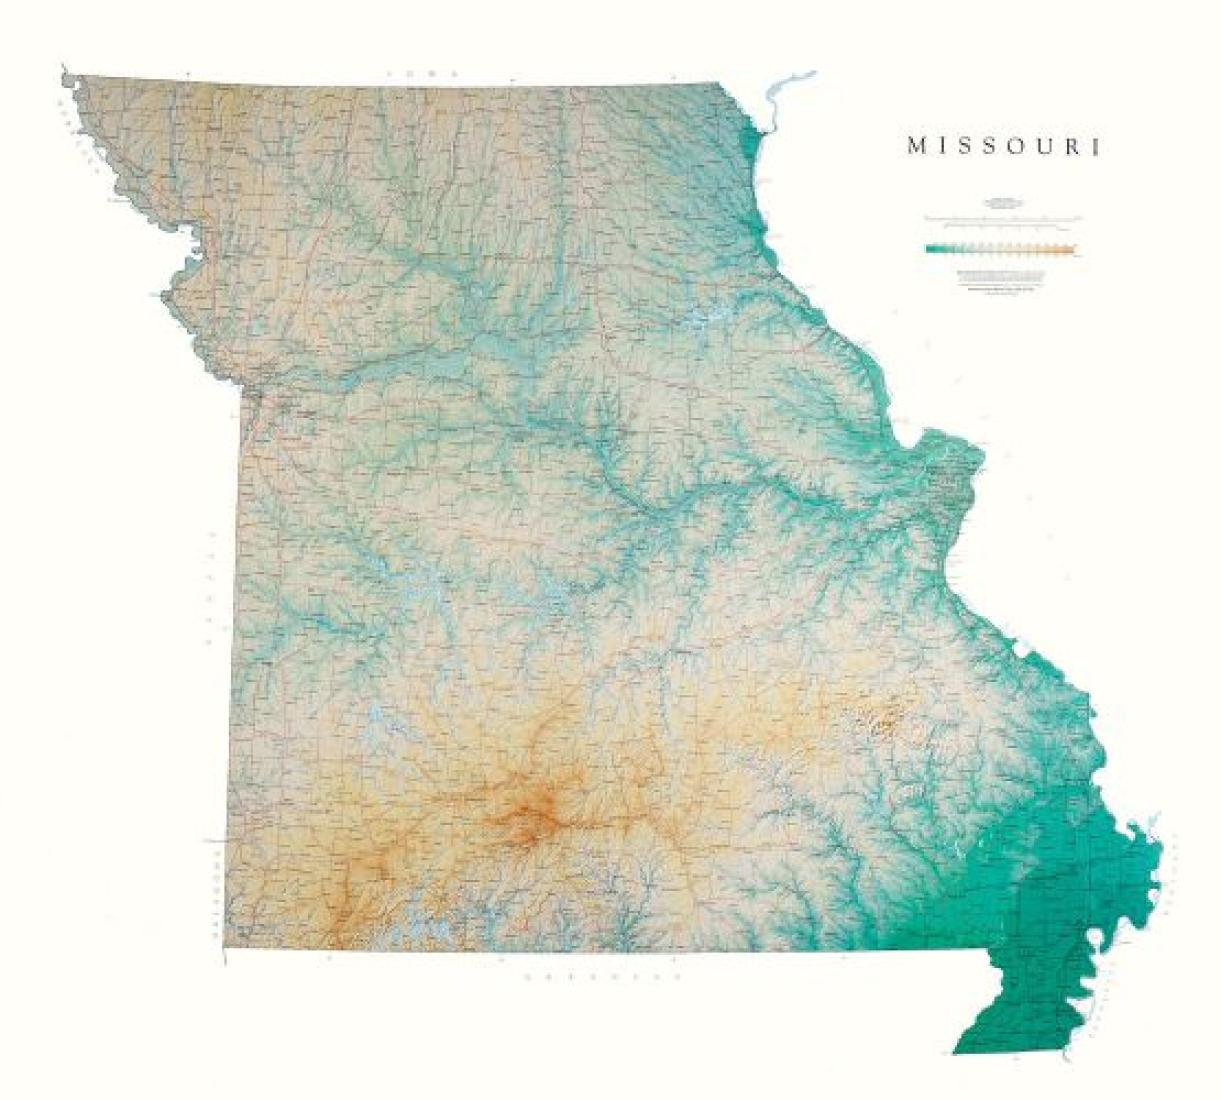 Missouri, Physical, Laminated Wall Map by Raven Maps on new mexico state physical map, kansas state world map, wa state physical map, state of kansas elevation map, kansas state rivers, pennsylvania state physical map, hutchinson kansas state map, kansas state population 2015, kansas state capital map, kansas state usa, state of kansas towns map, ohio state physical map, kansas state highway road map, kansas state climate, kansas state bird flower and tree, chicago state physical map, kansas state map with cities and towns, maine state physical map, topography of kansas state map, nebraska-kansas colorado map,